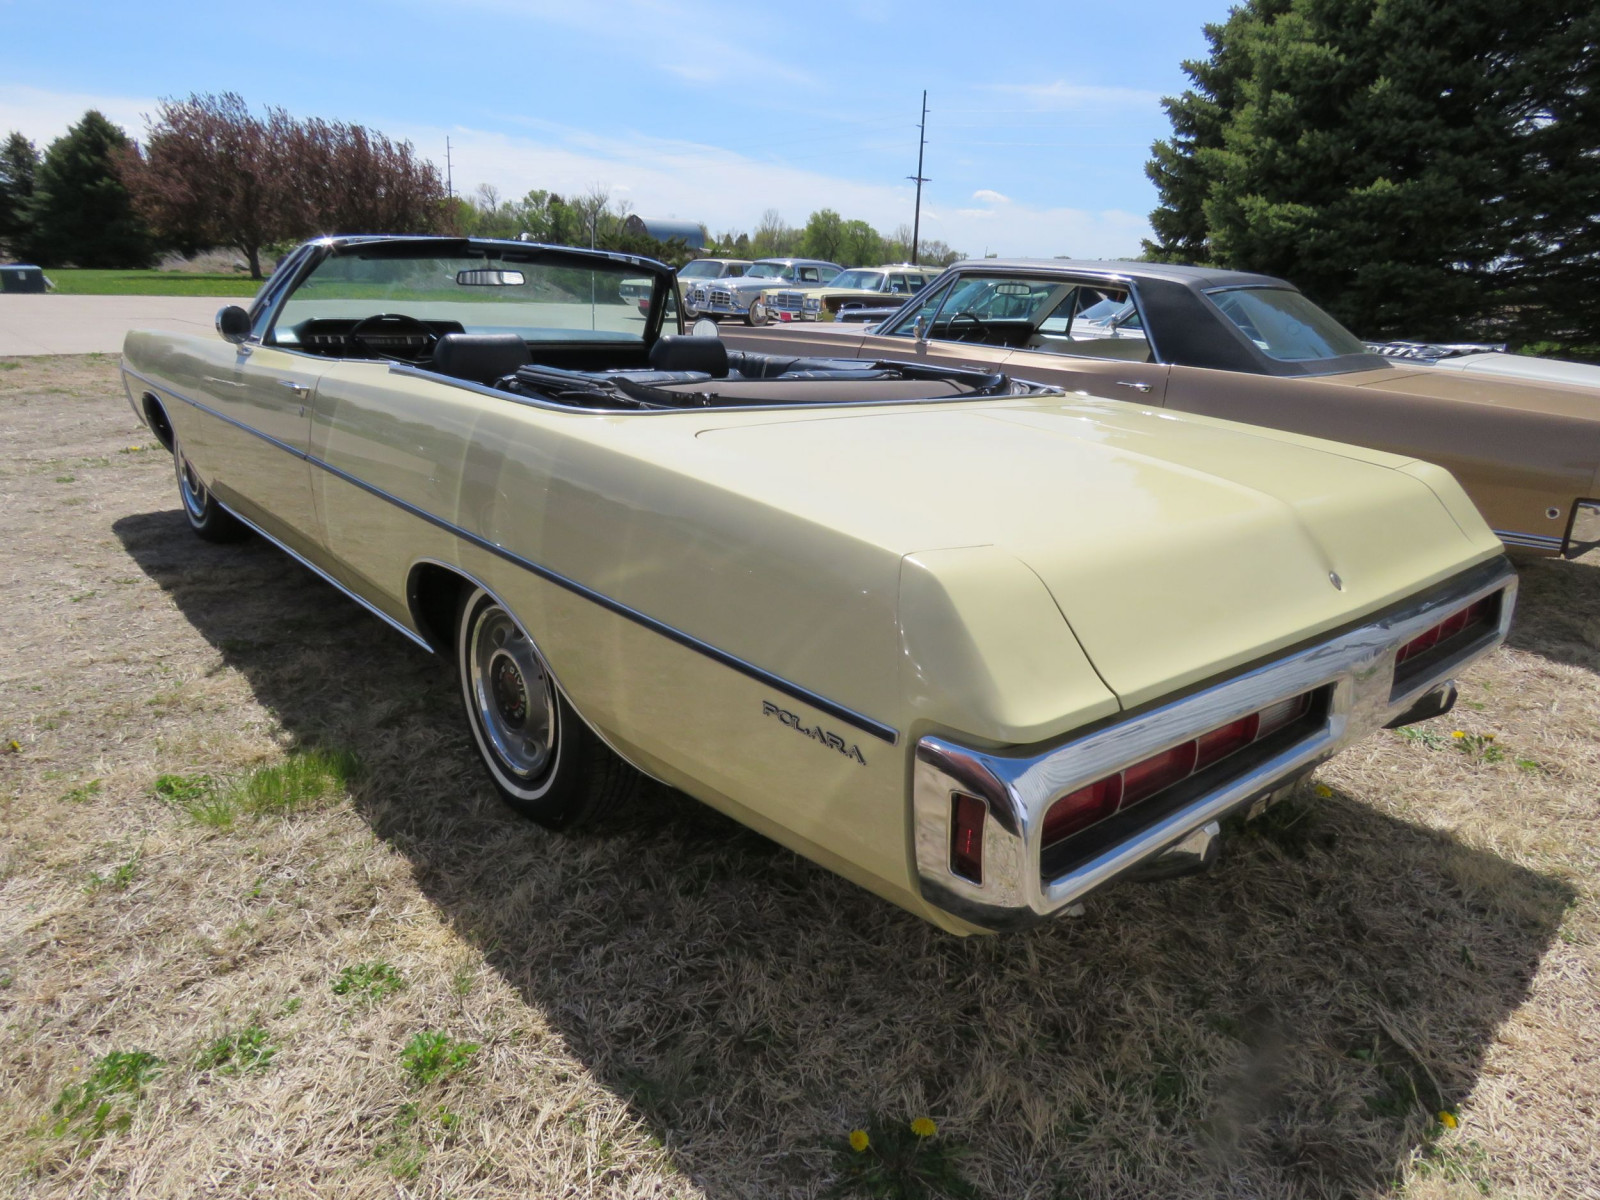 Rare 1970 Dodge Polara Convertible - Image 8